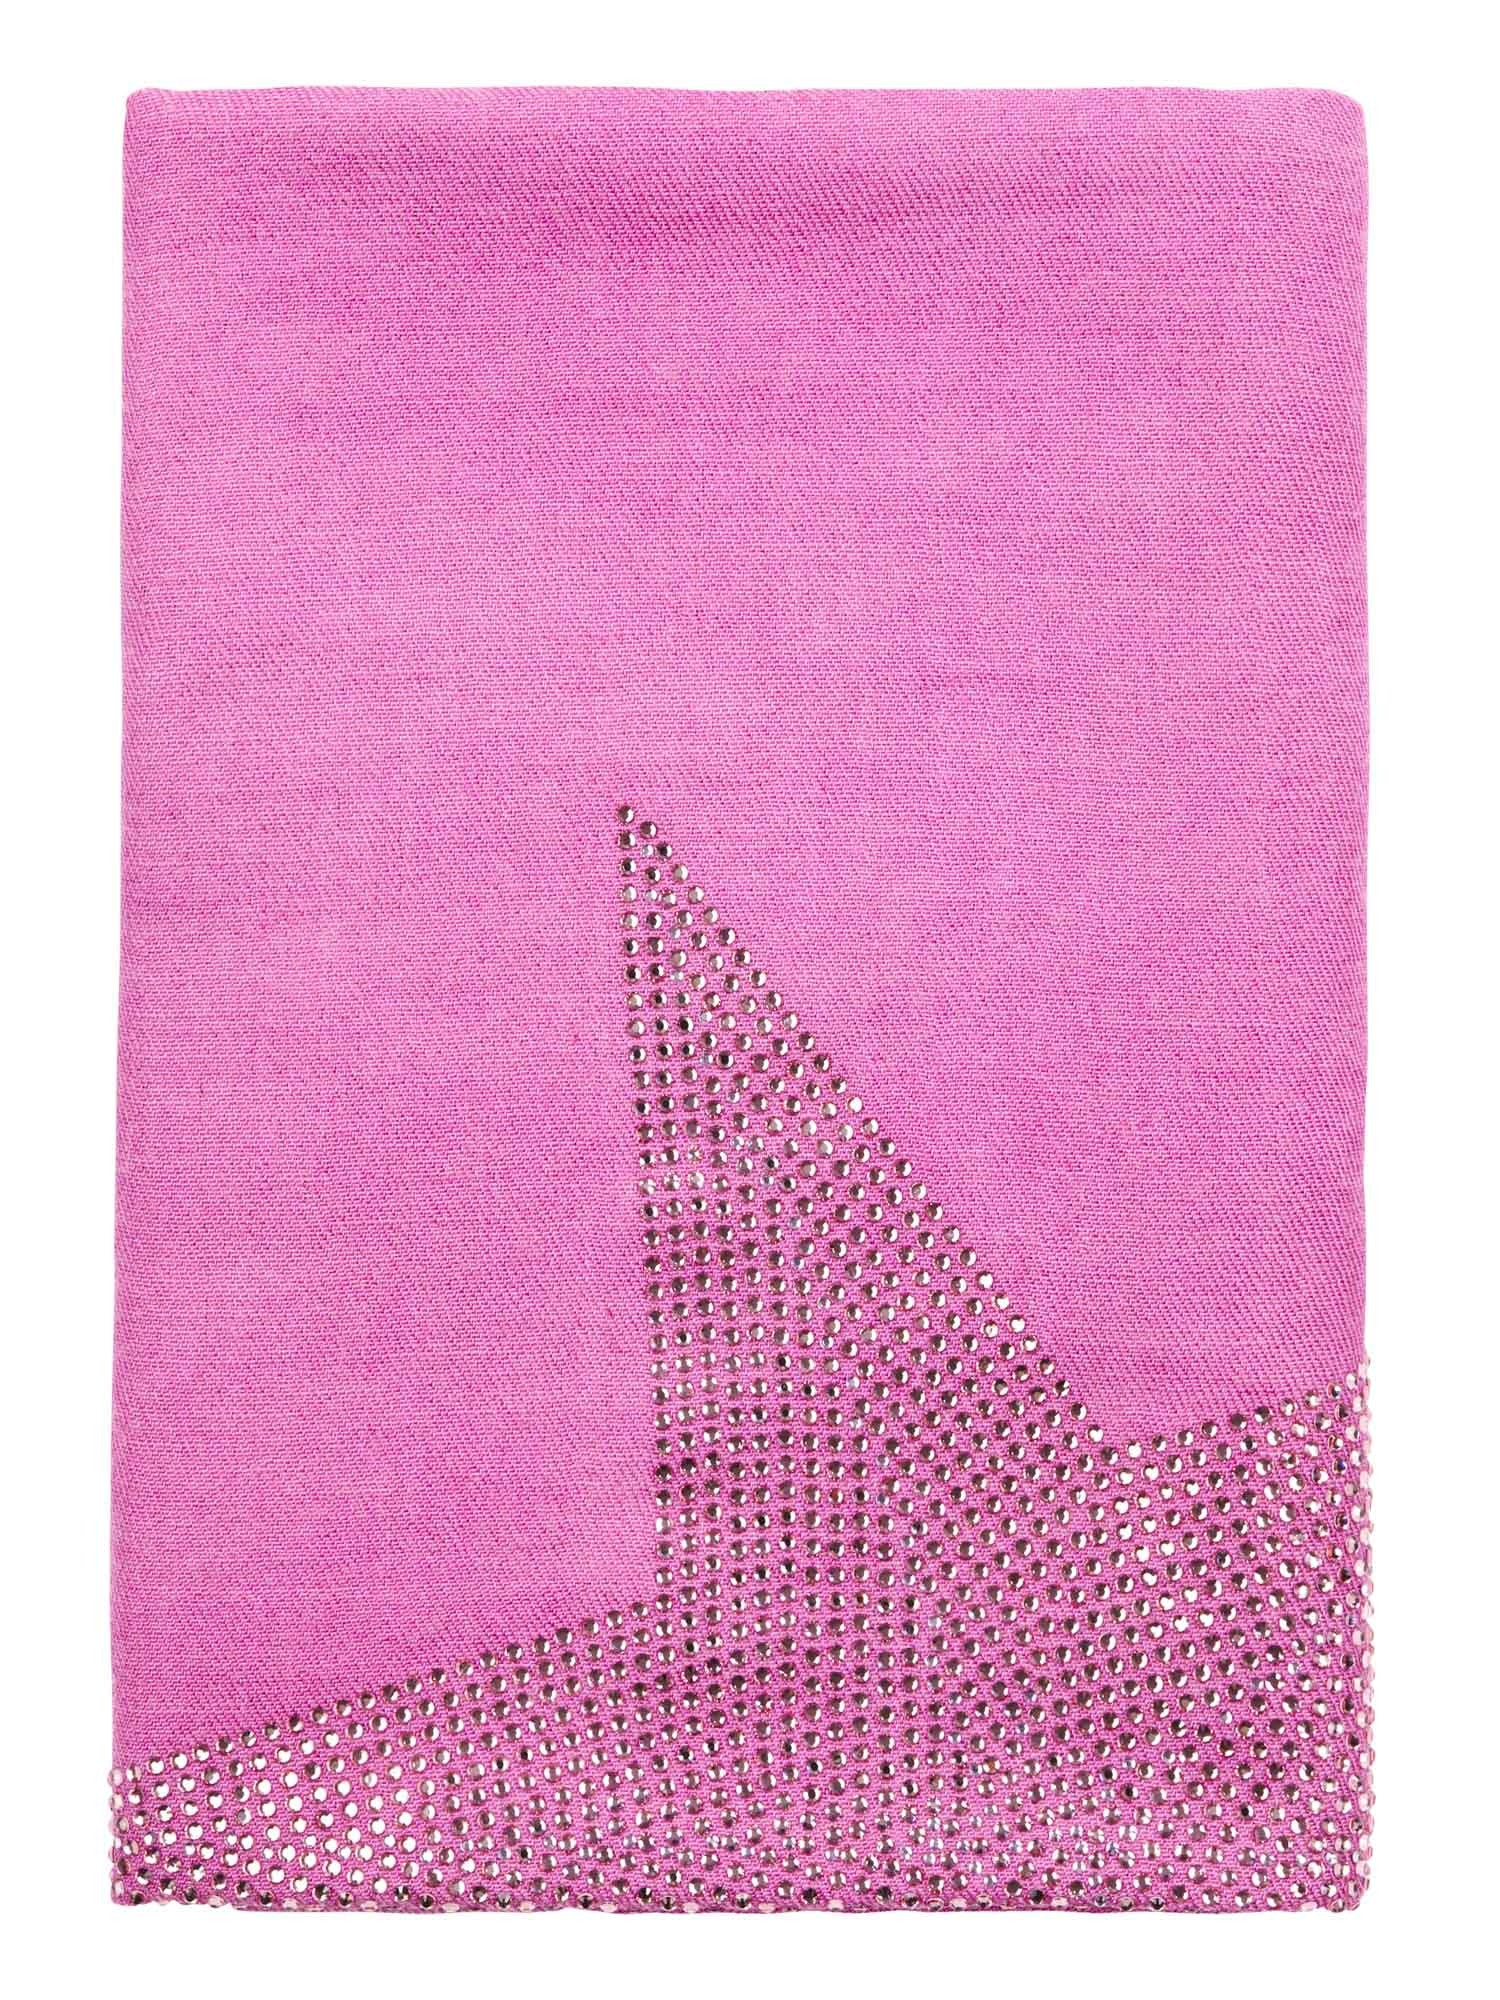 Crystal embellished cashmere pashmina shawl, pink with star